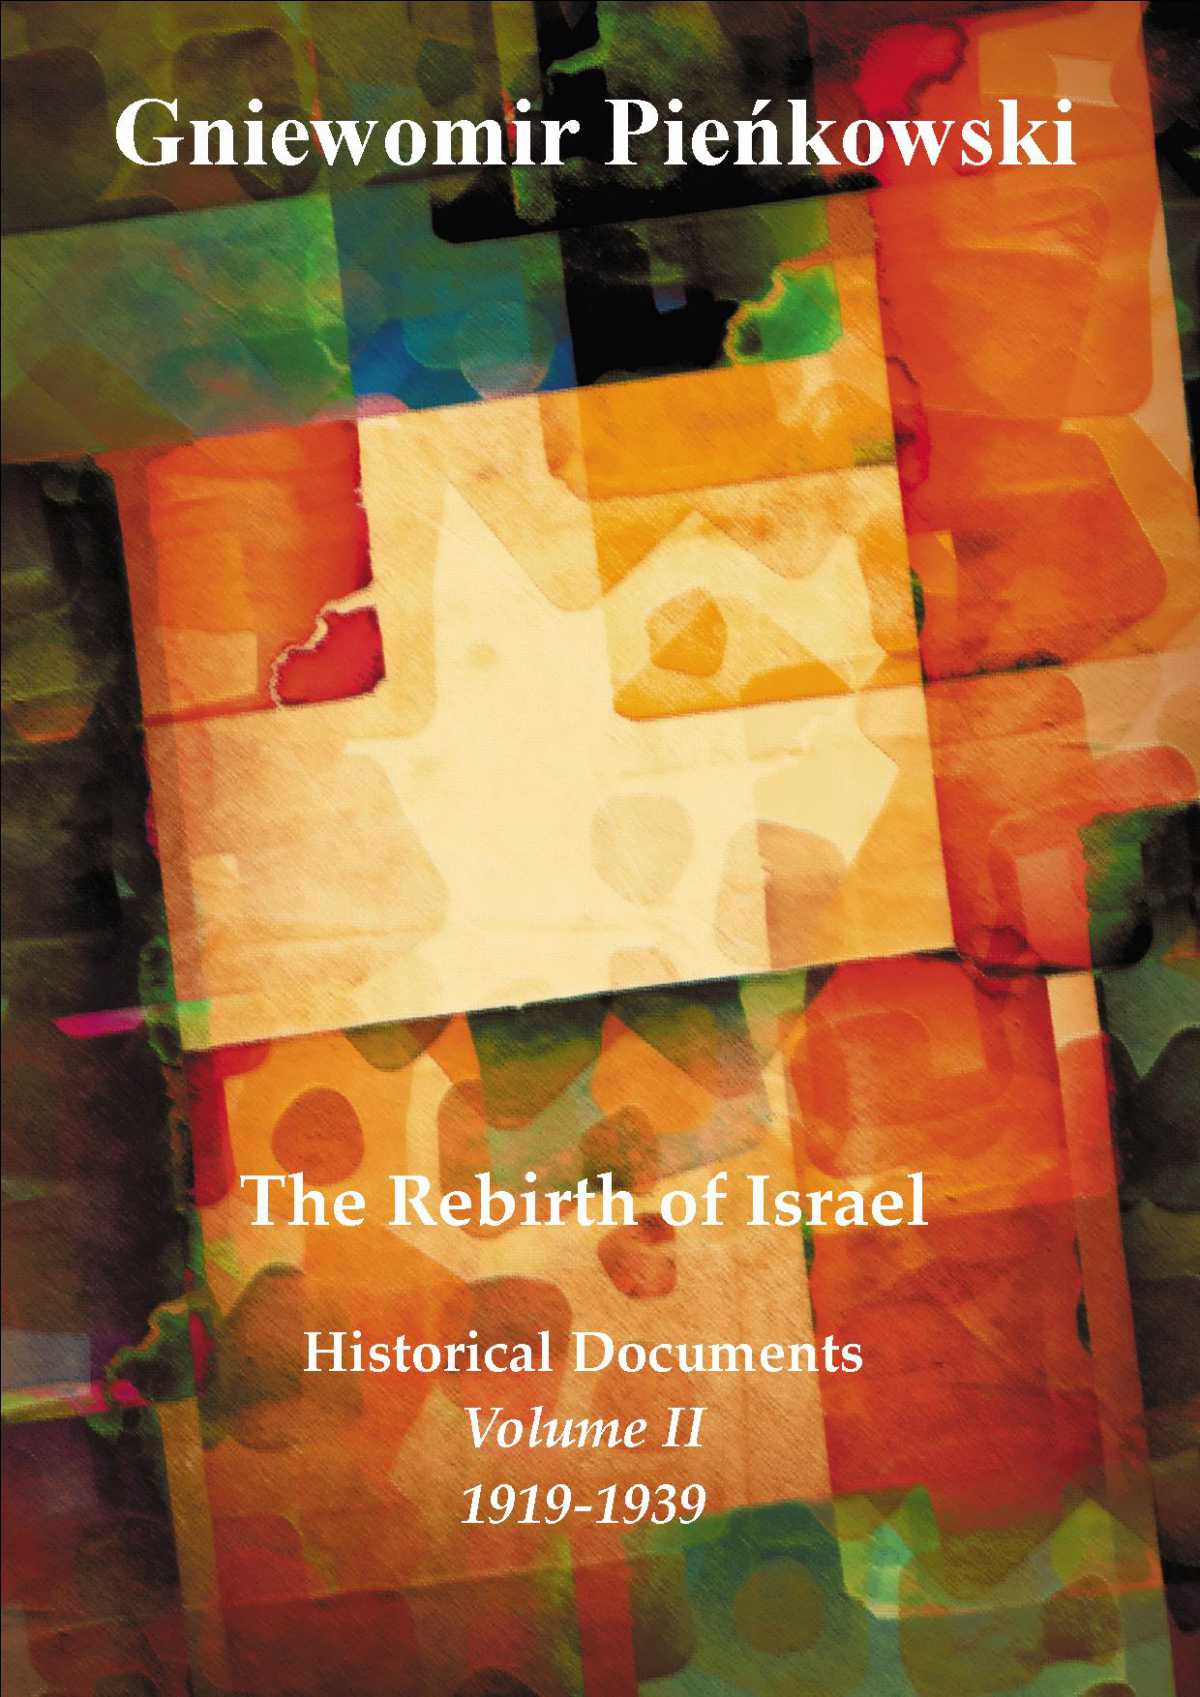 The Rebirth of Israel. Historical Documents. Volume II: 1919-1939. - Ebook (Książka PDF) do pobrania w formacie PDF